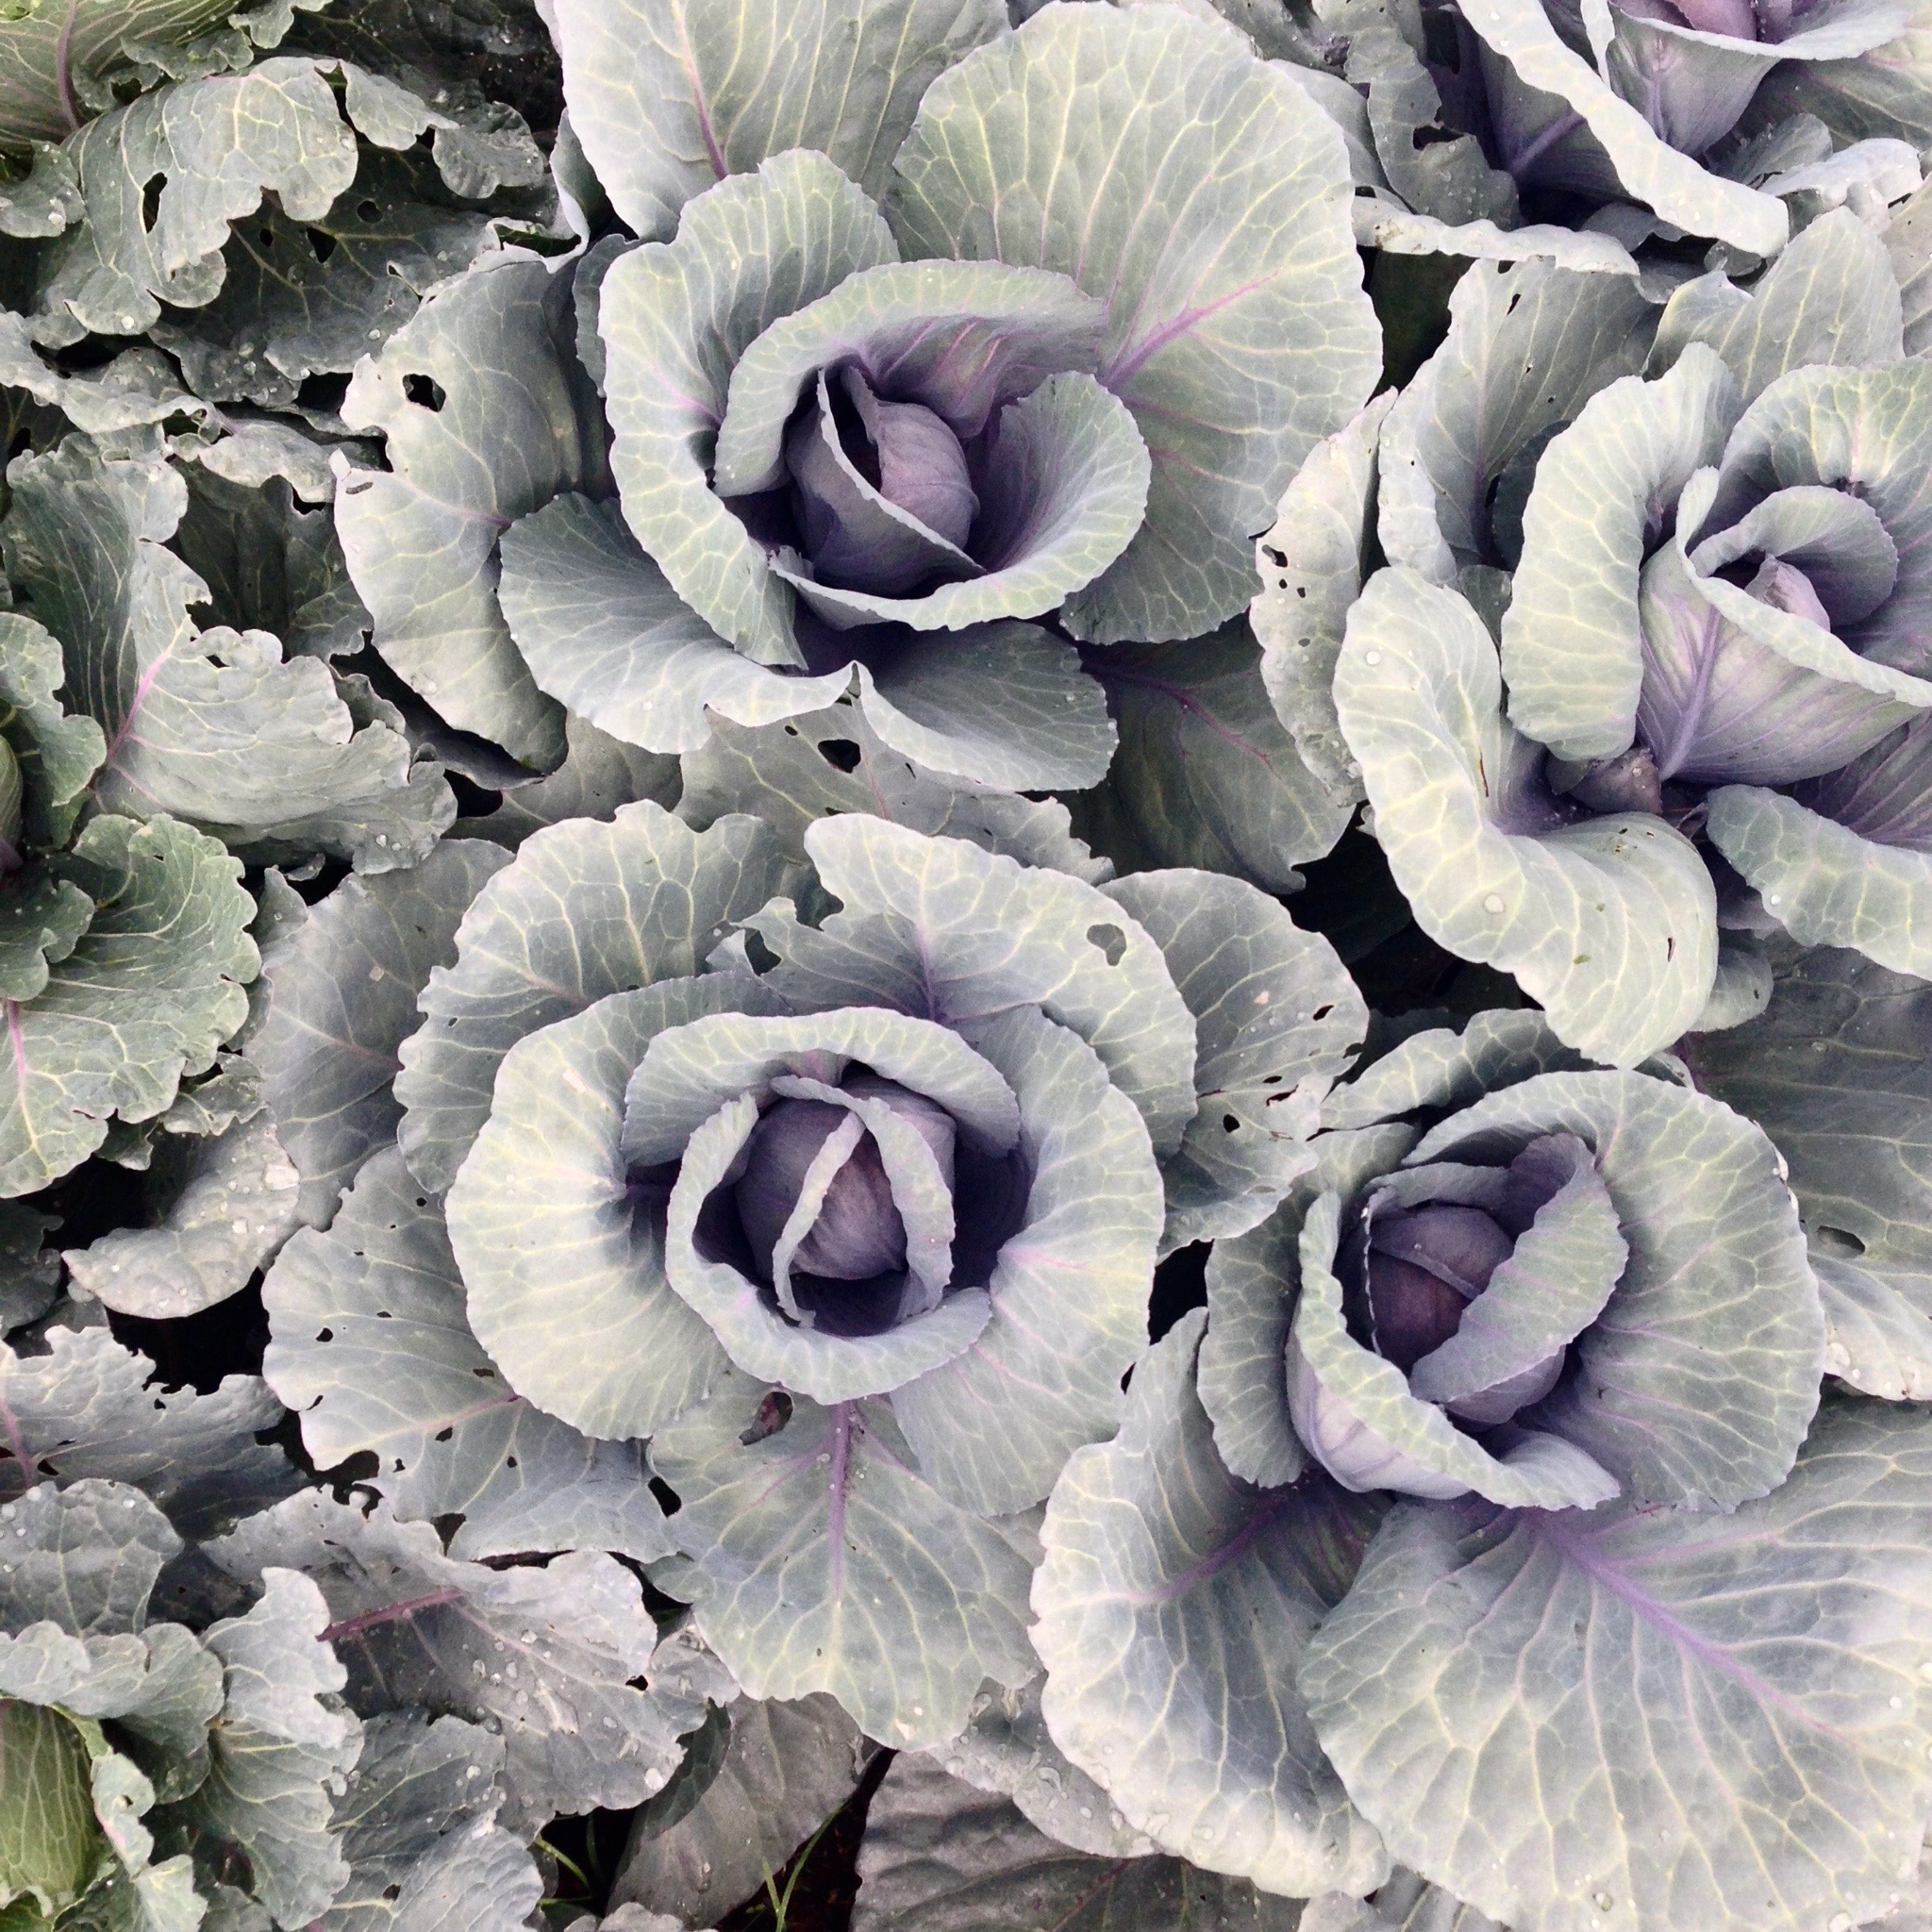 Some cabbages from a friend's garden